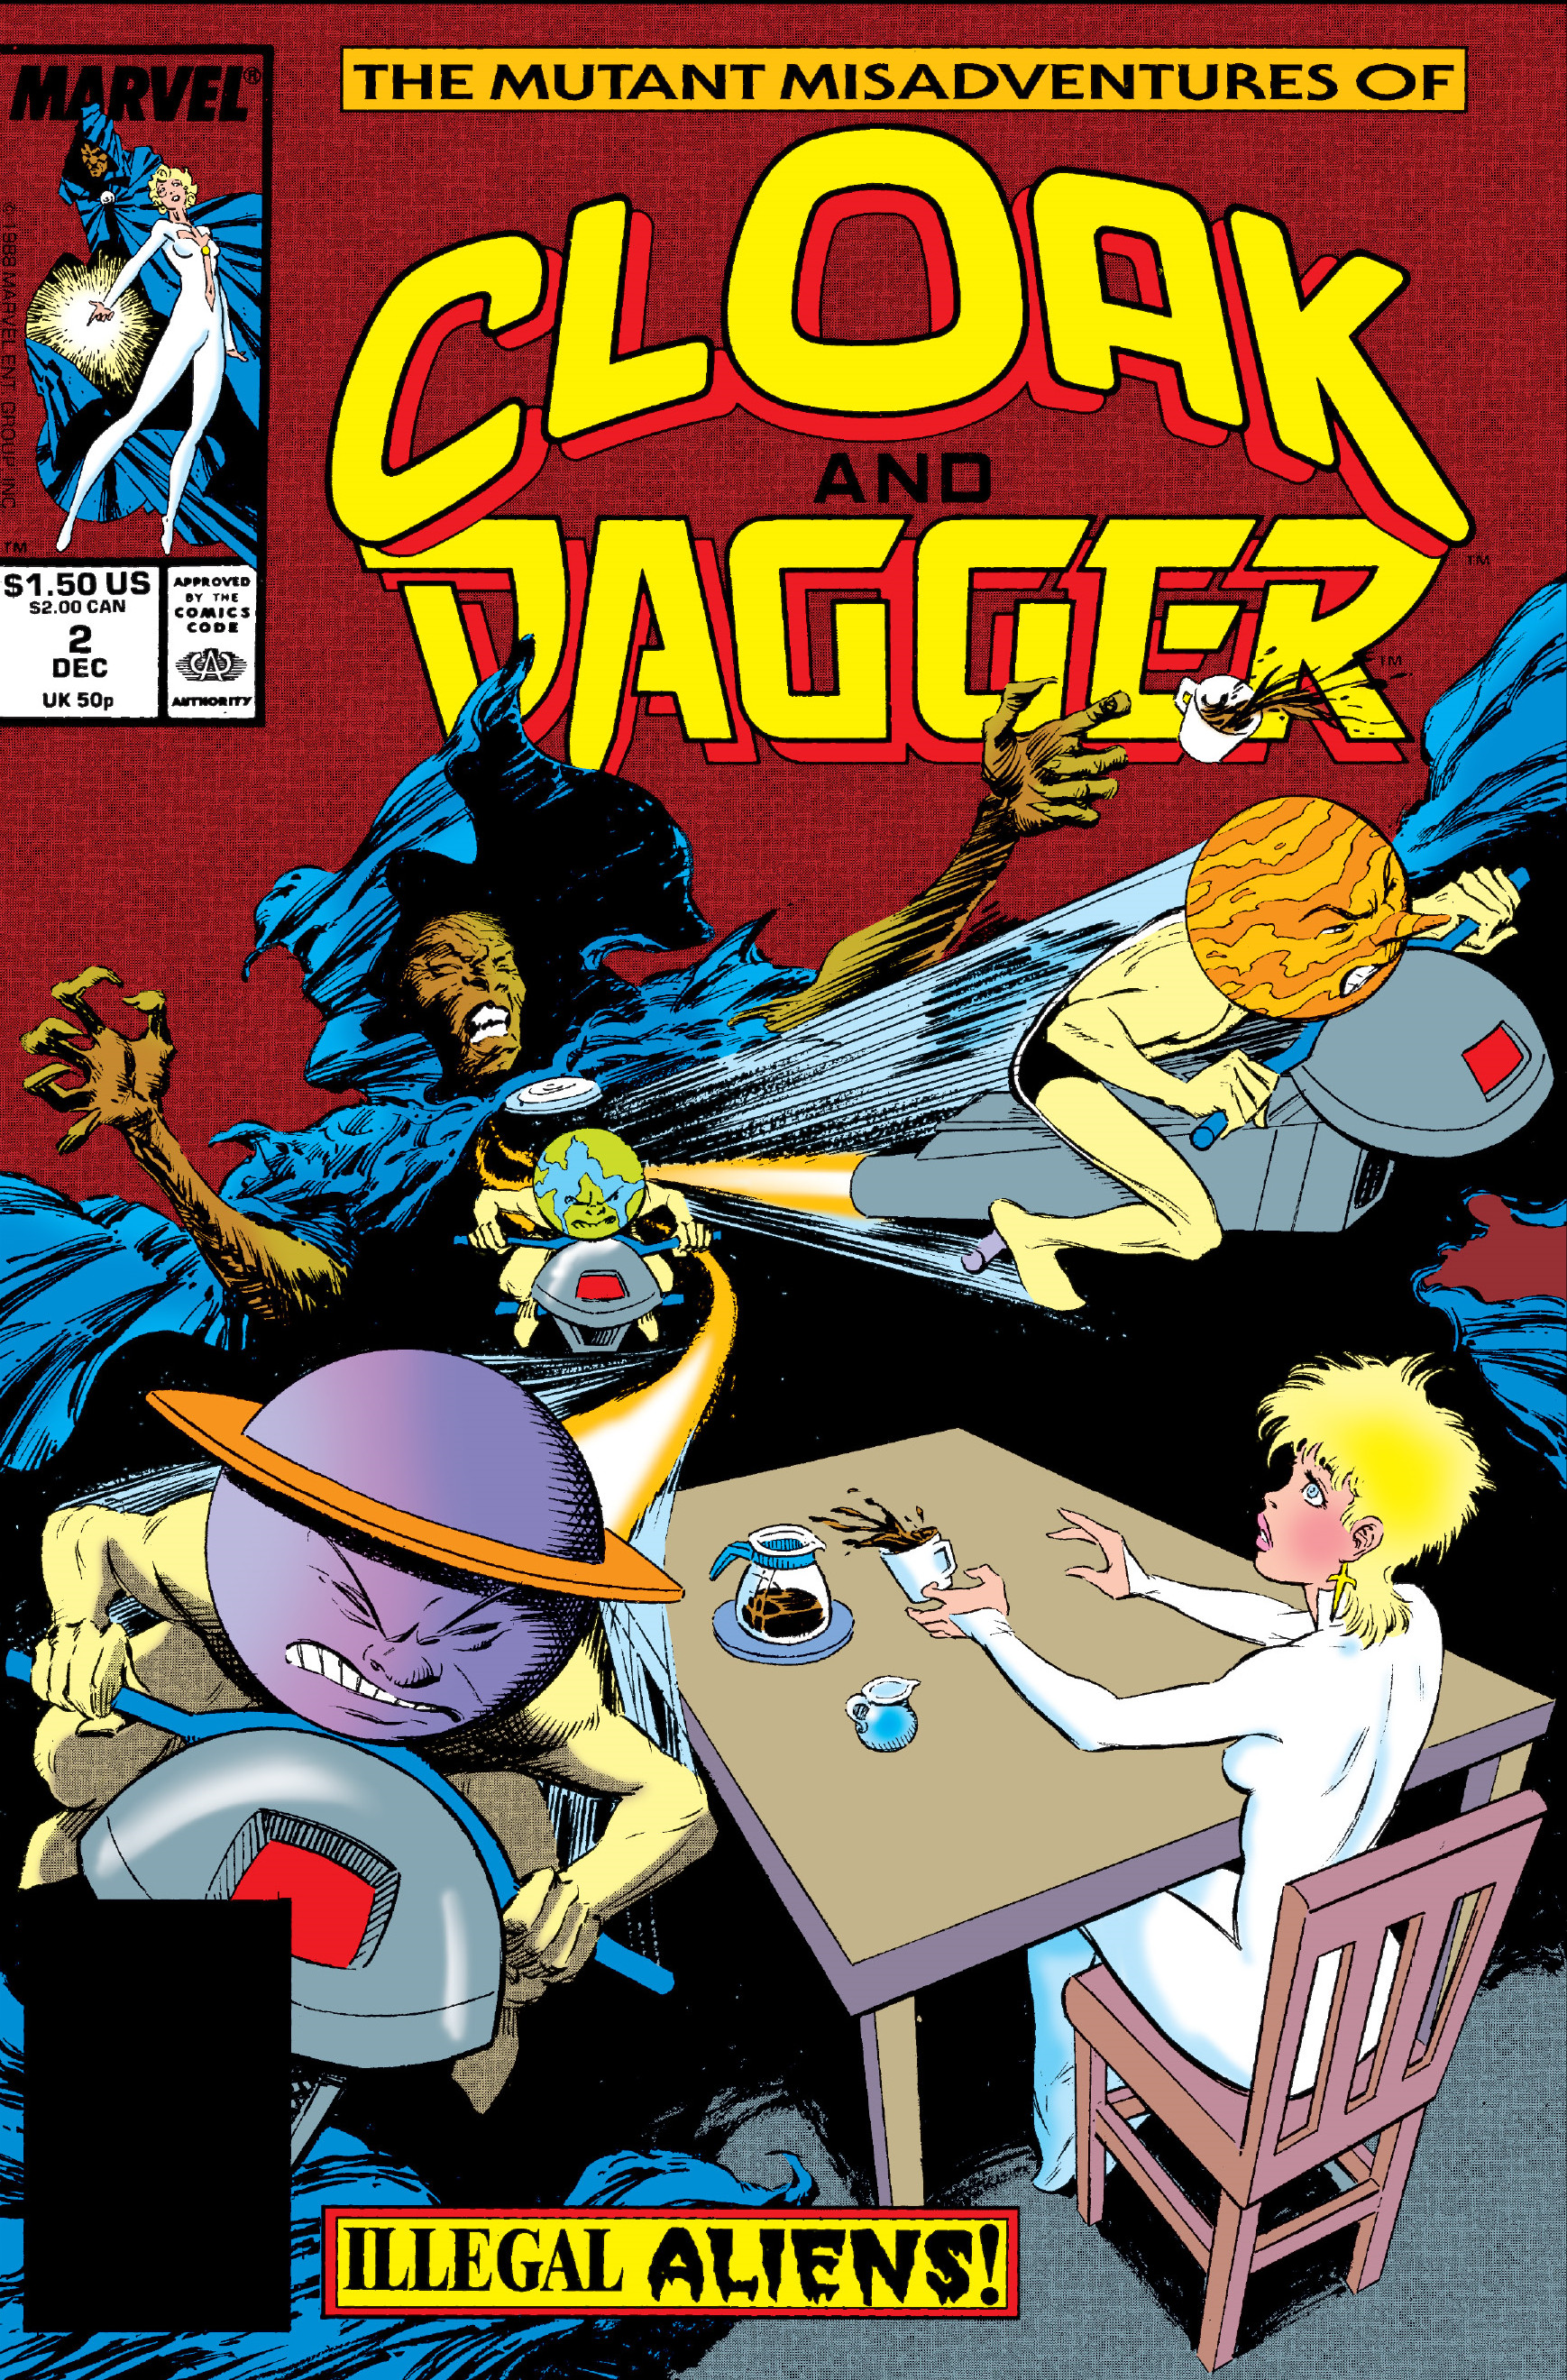 Mutant Misadventures of Cloak and Dagger Vol 1 2